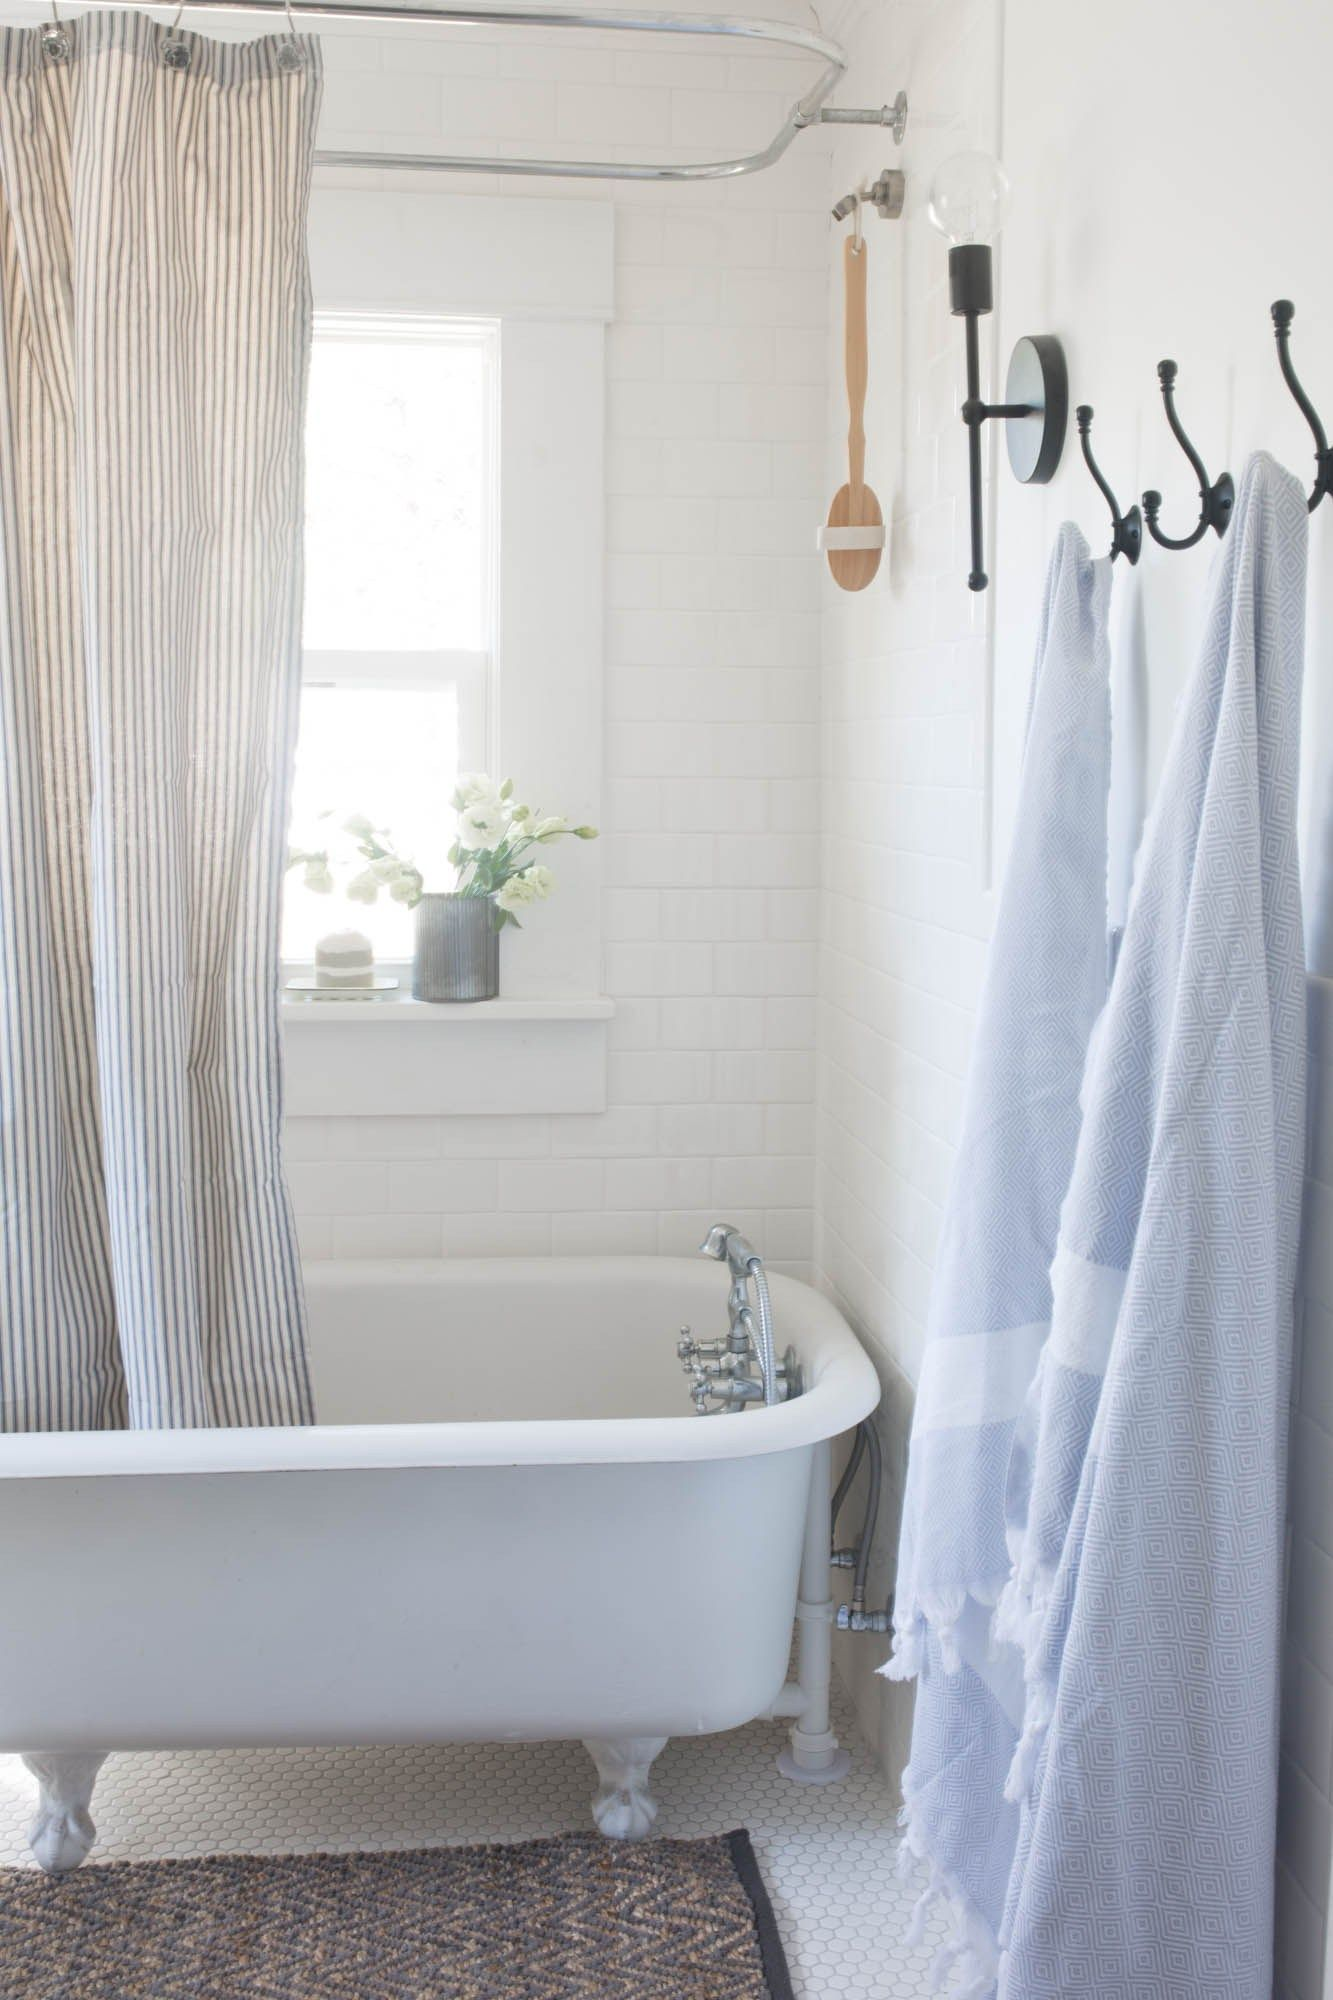 Farmhouse Bathroom Decor | Tubs, Towels and Bath